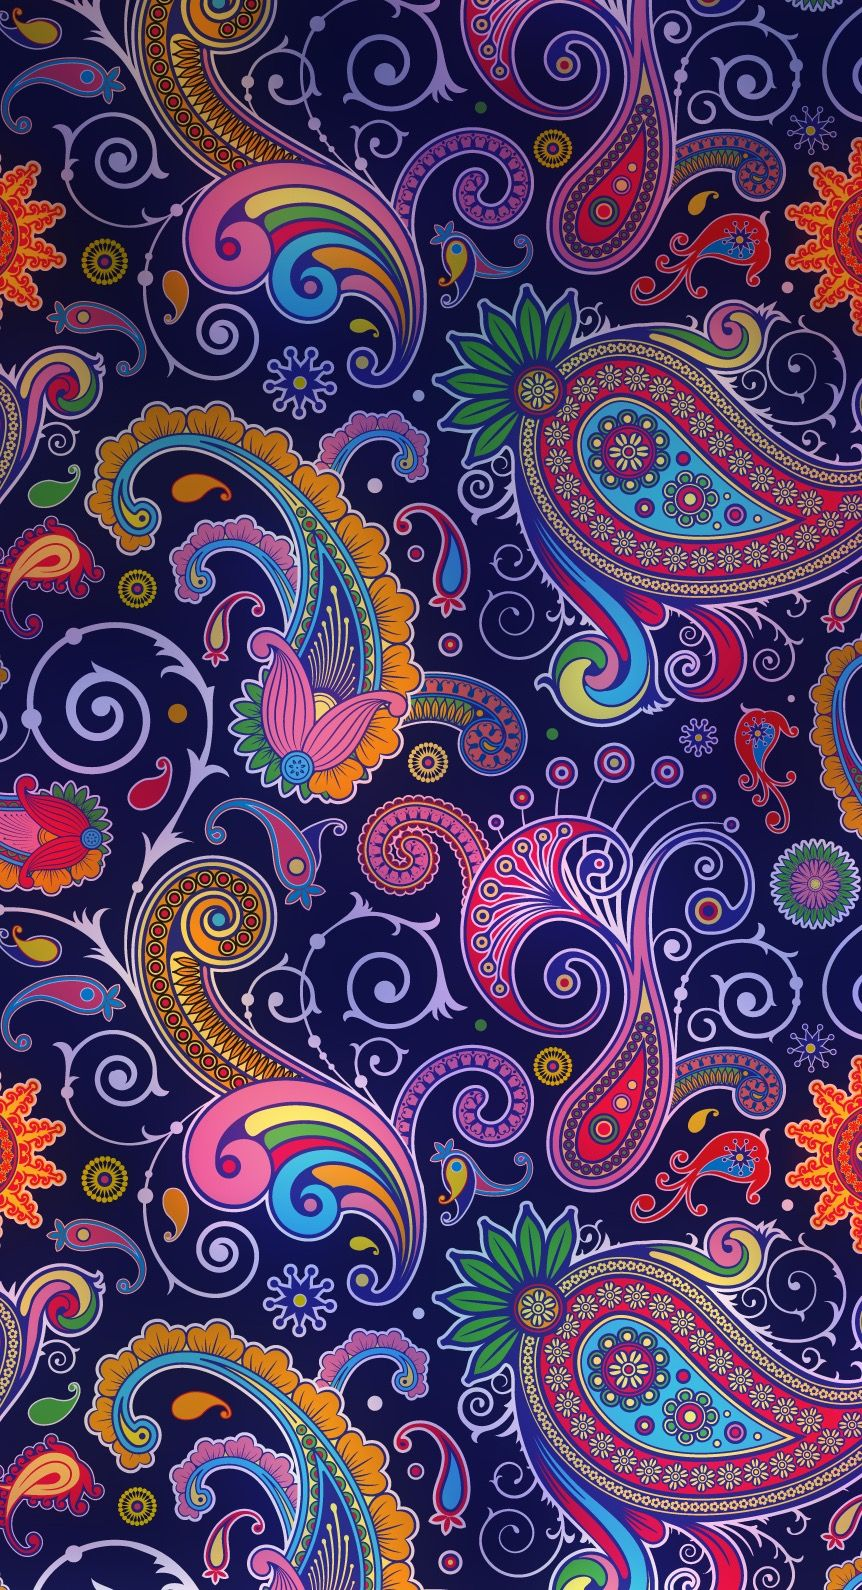 Mad for Mod Paisley | paisley in 2019 | Paisley wallpaper, Paisley art, Pattern wallpaper